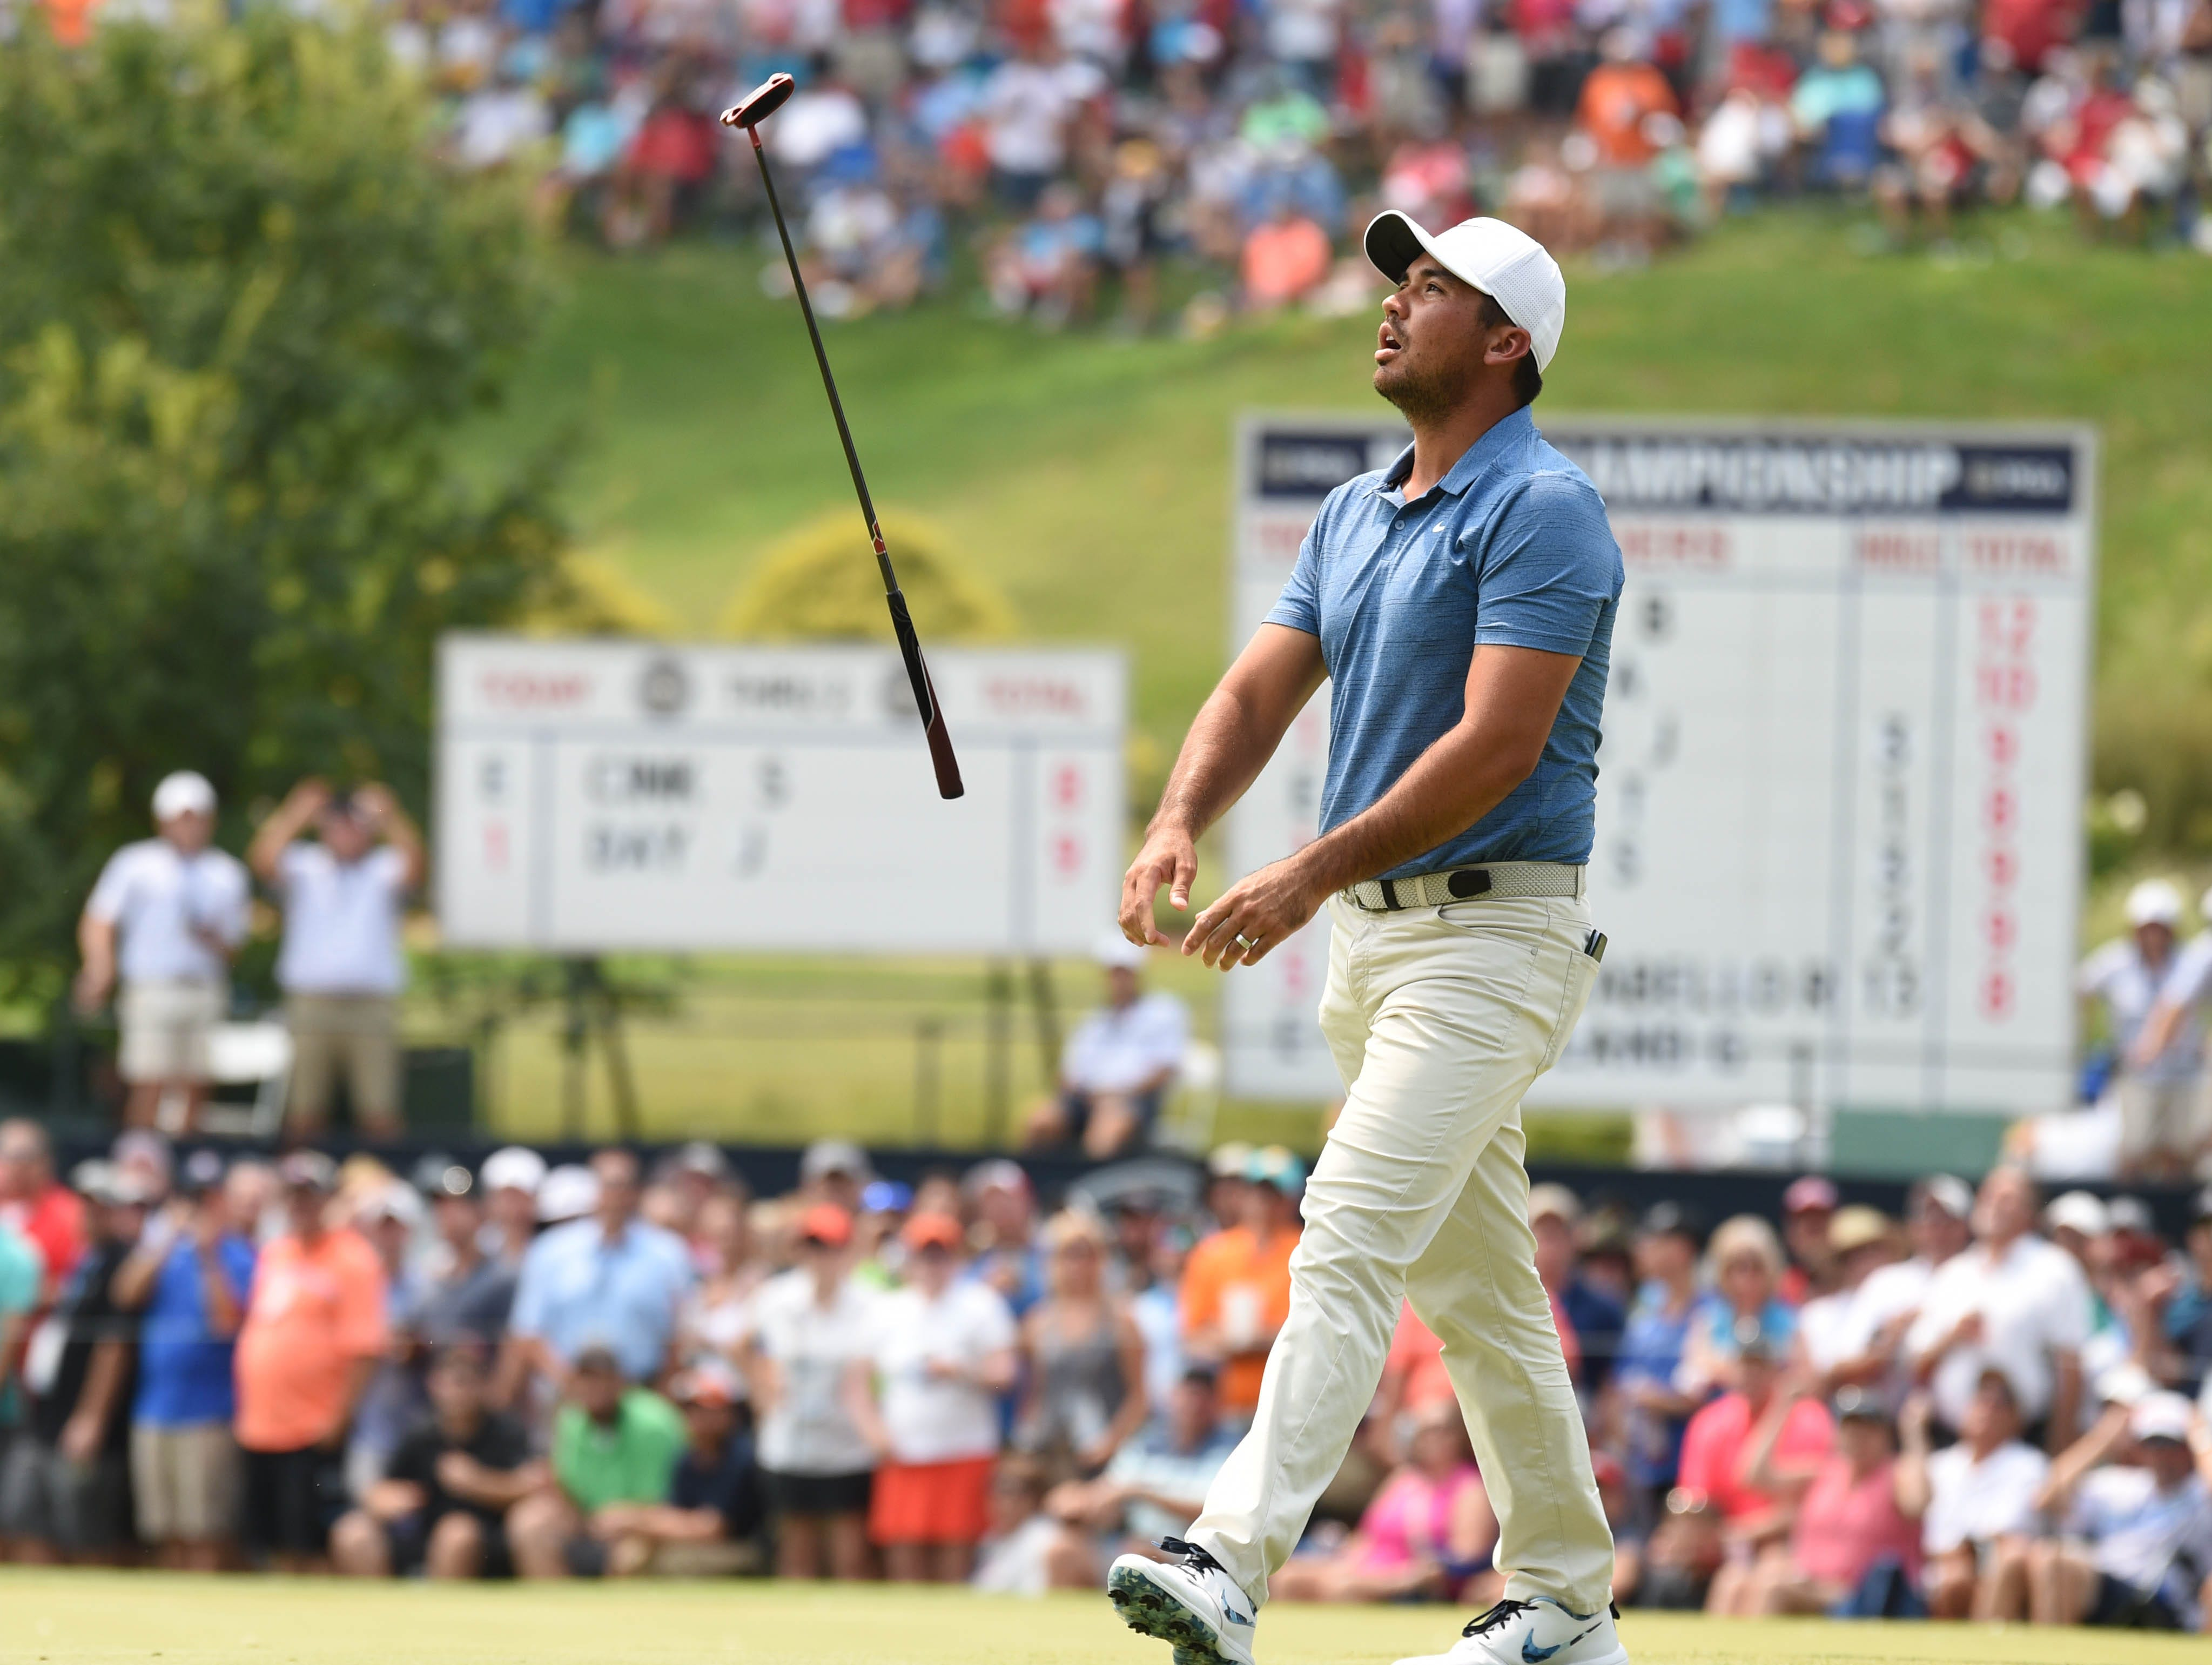 Jason Day reacts after missing a putt on the third green during the final round.